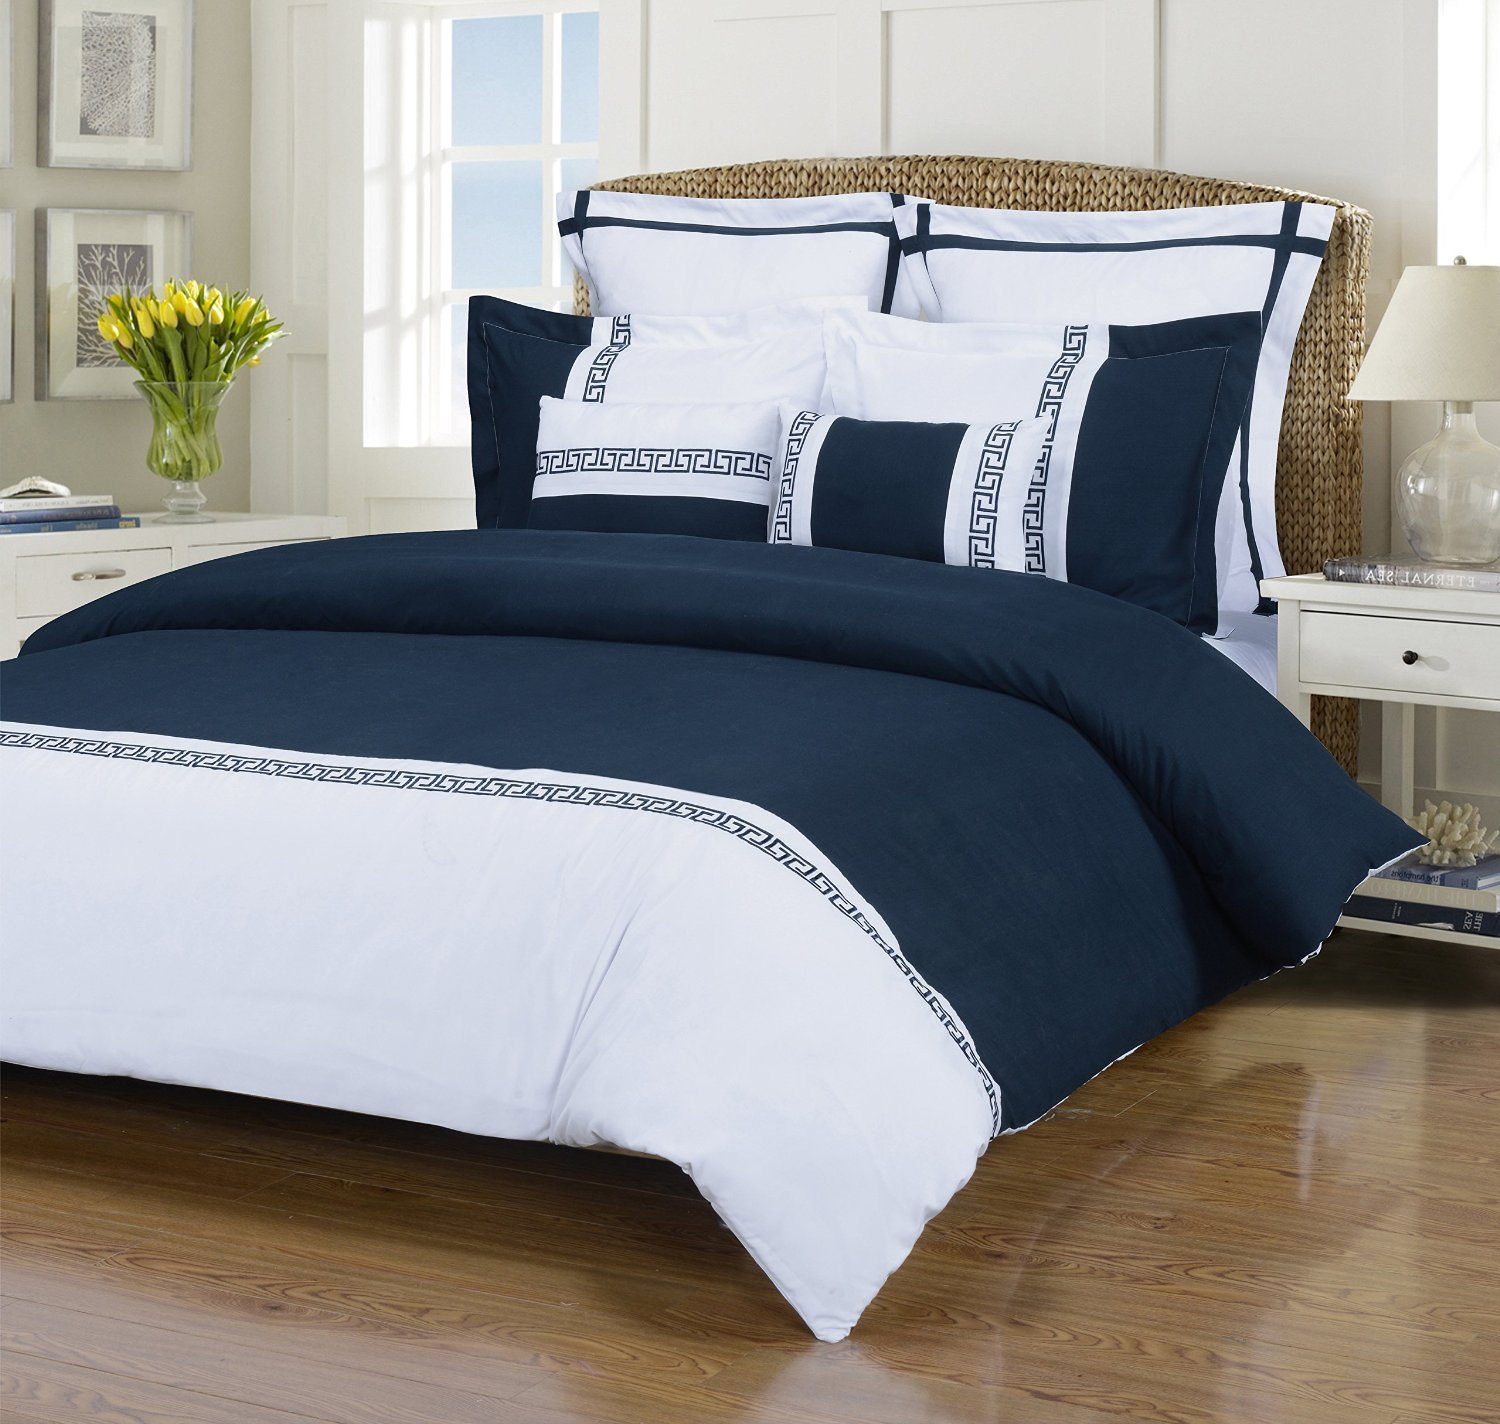 Blue And White Duvet Cover Sets 10 Favorites You Will Love